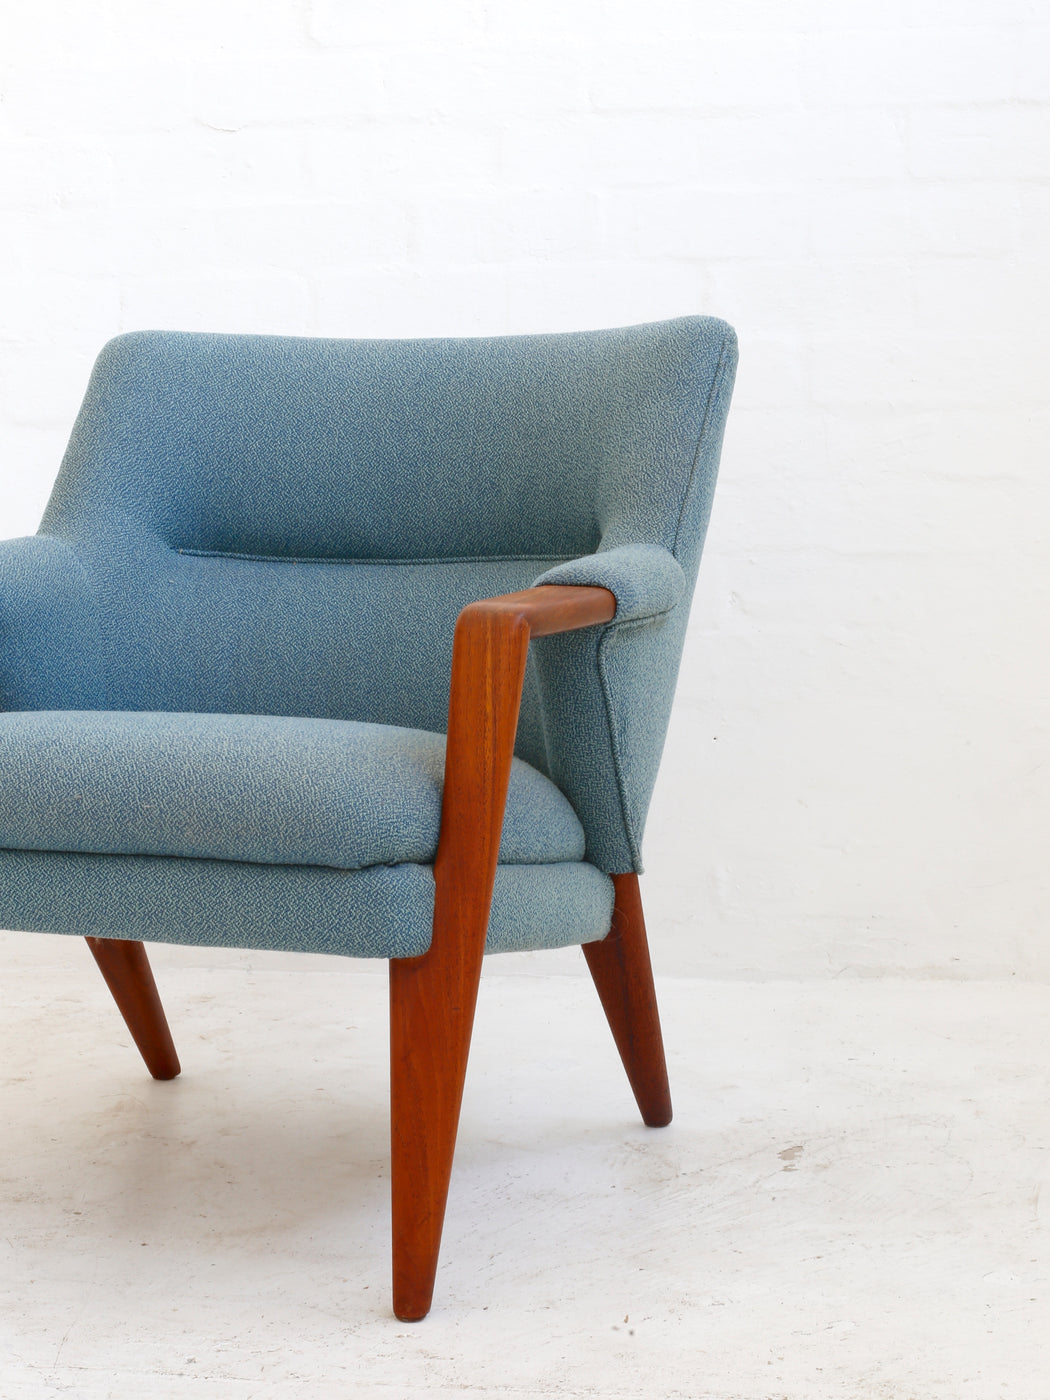 Kurt Olsen Lounge Chair